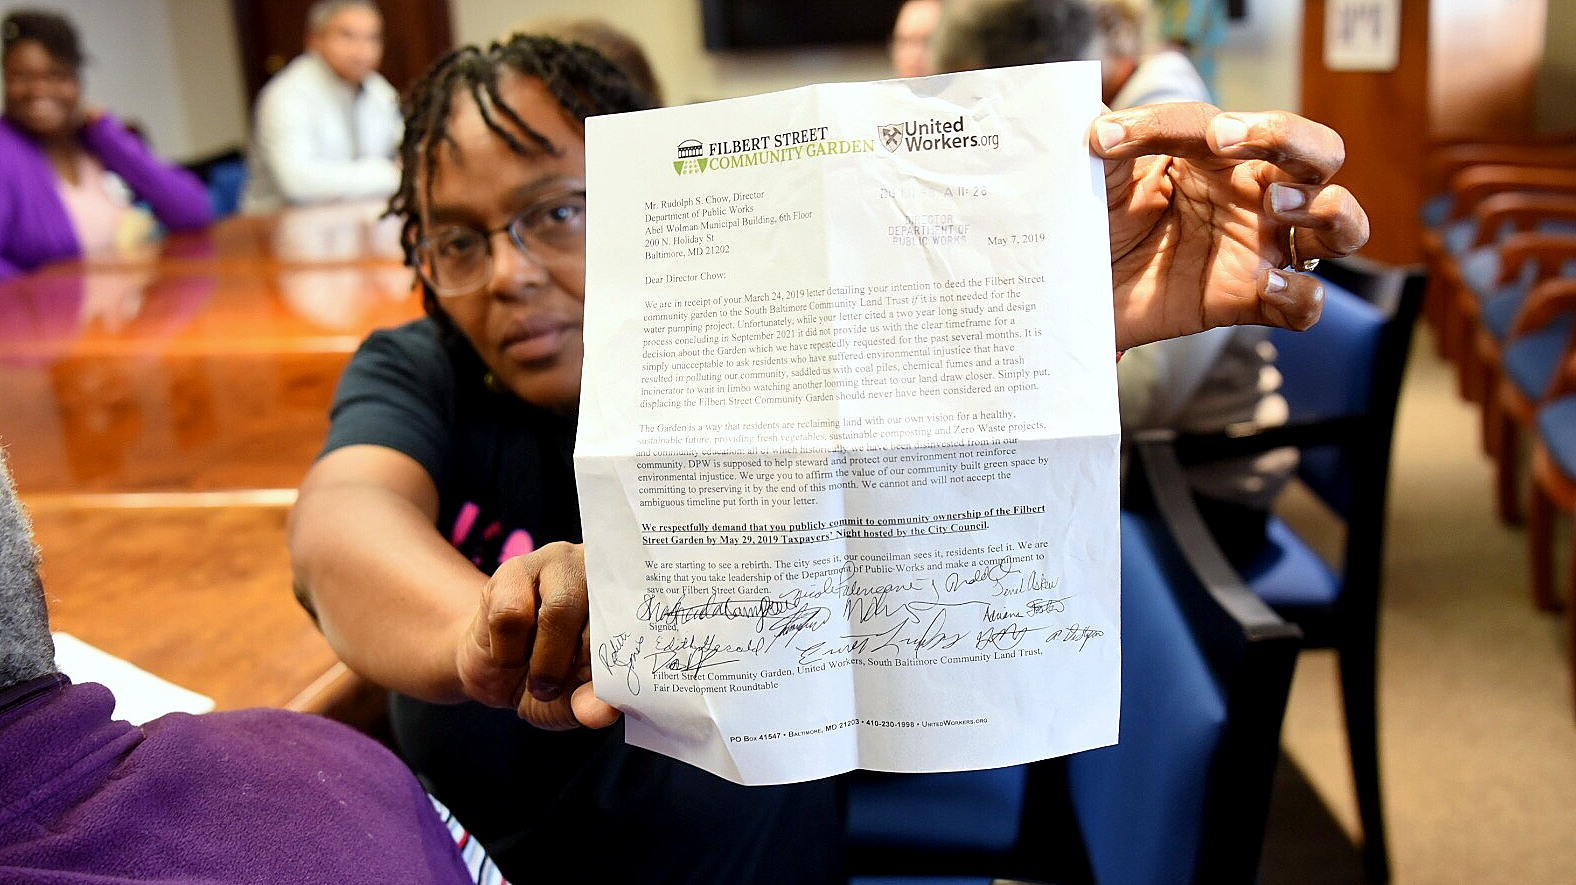 Filbert Street Garden manager Rodette Jones with the letter from DPW. (J.M. Giordano)